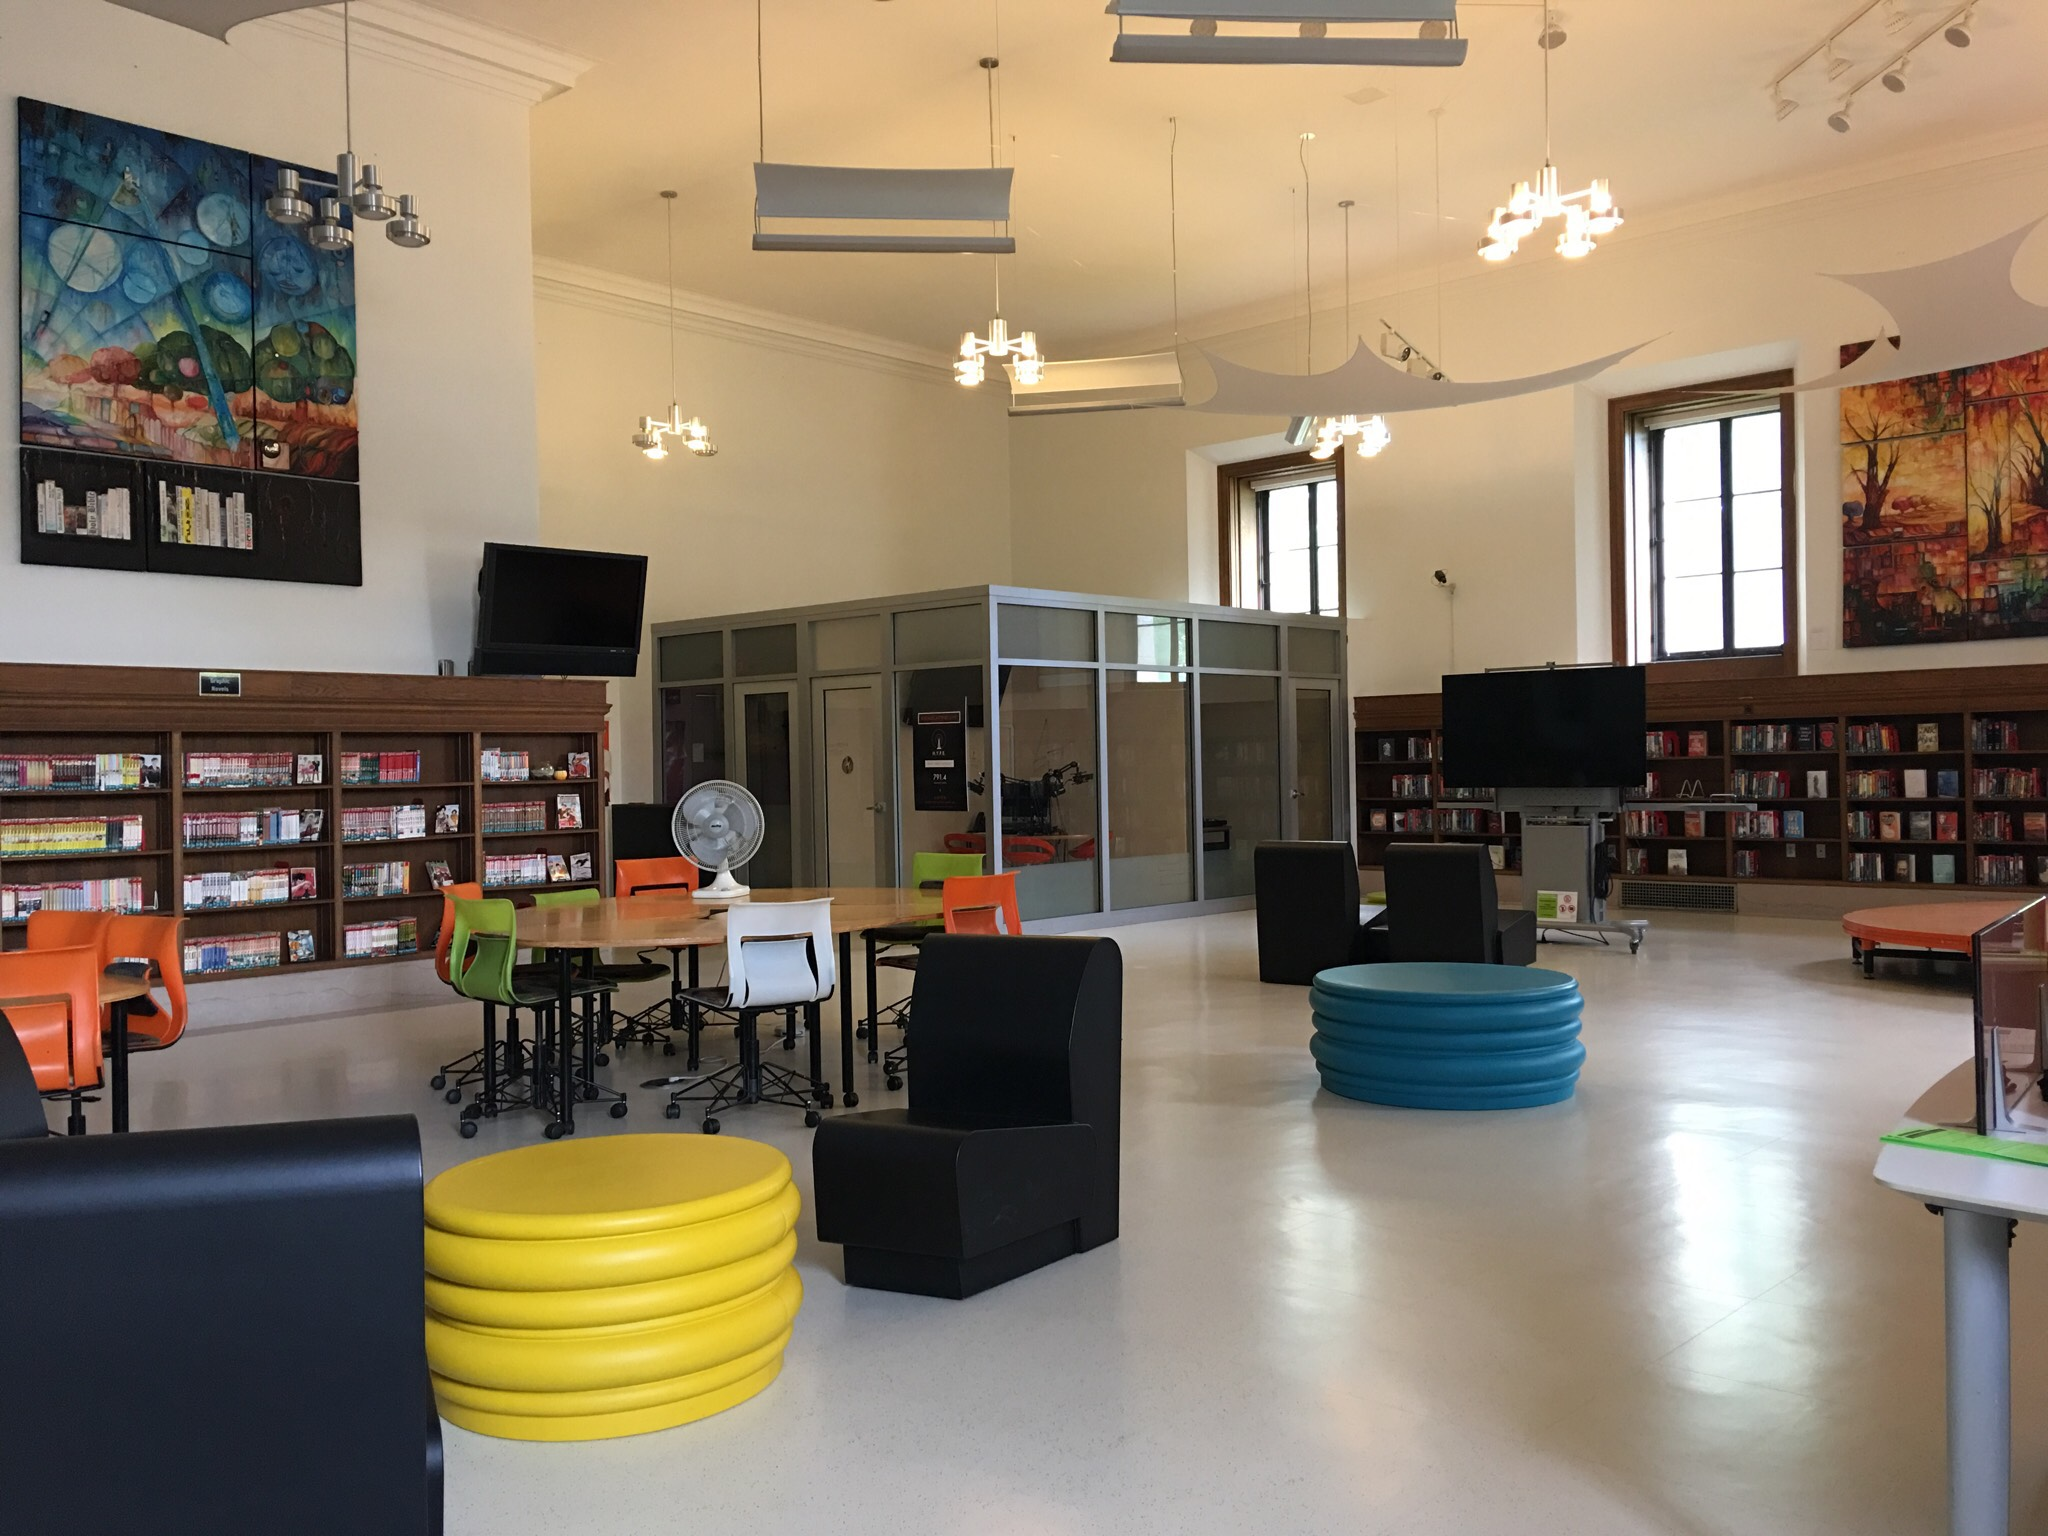 """The """"H.Y.P.E.Room,"""" a community space designed by and reserved for teenagers at the Detroit Public Library."""